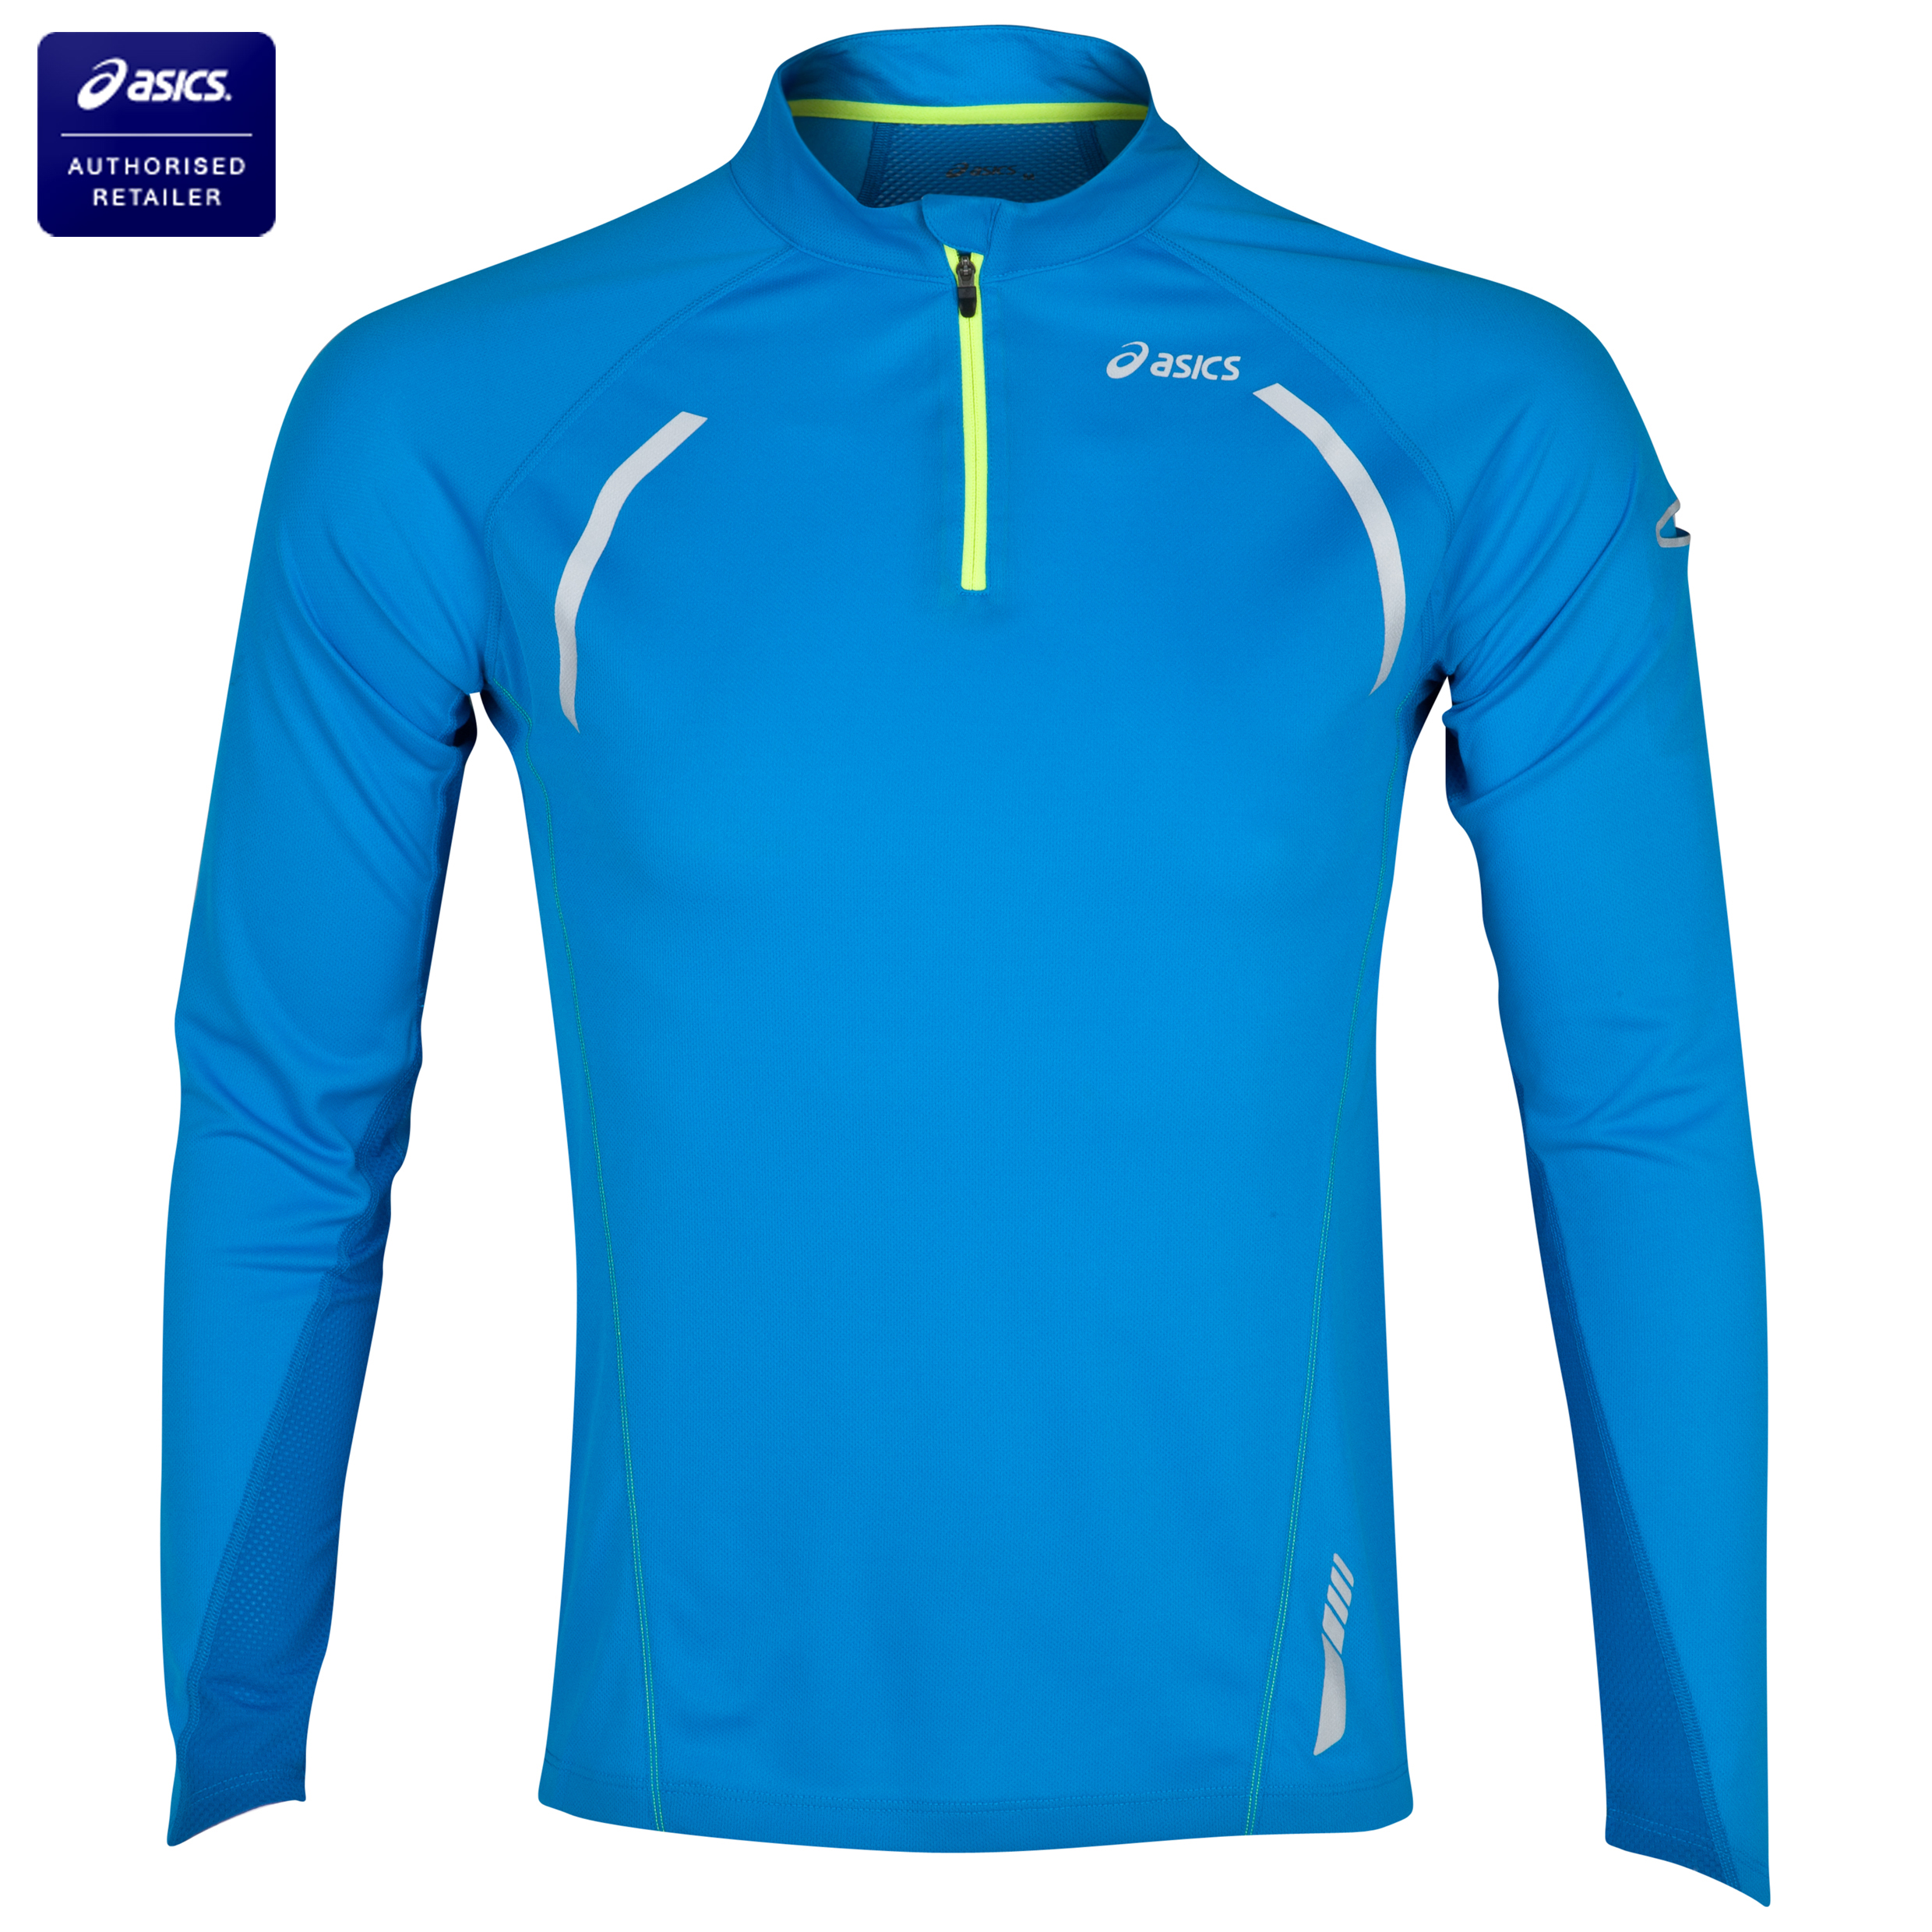 Asics Long Sleeve Half Zip Running Top - Surf Blue